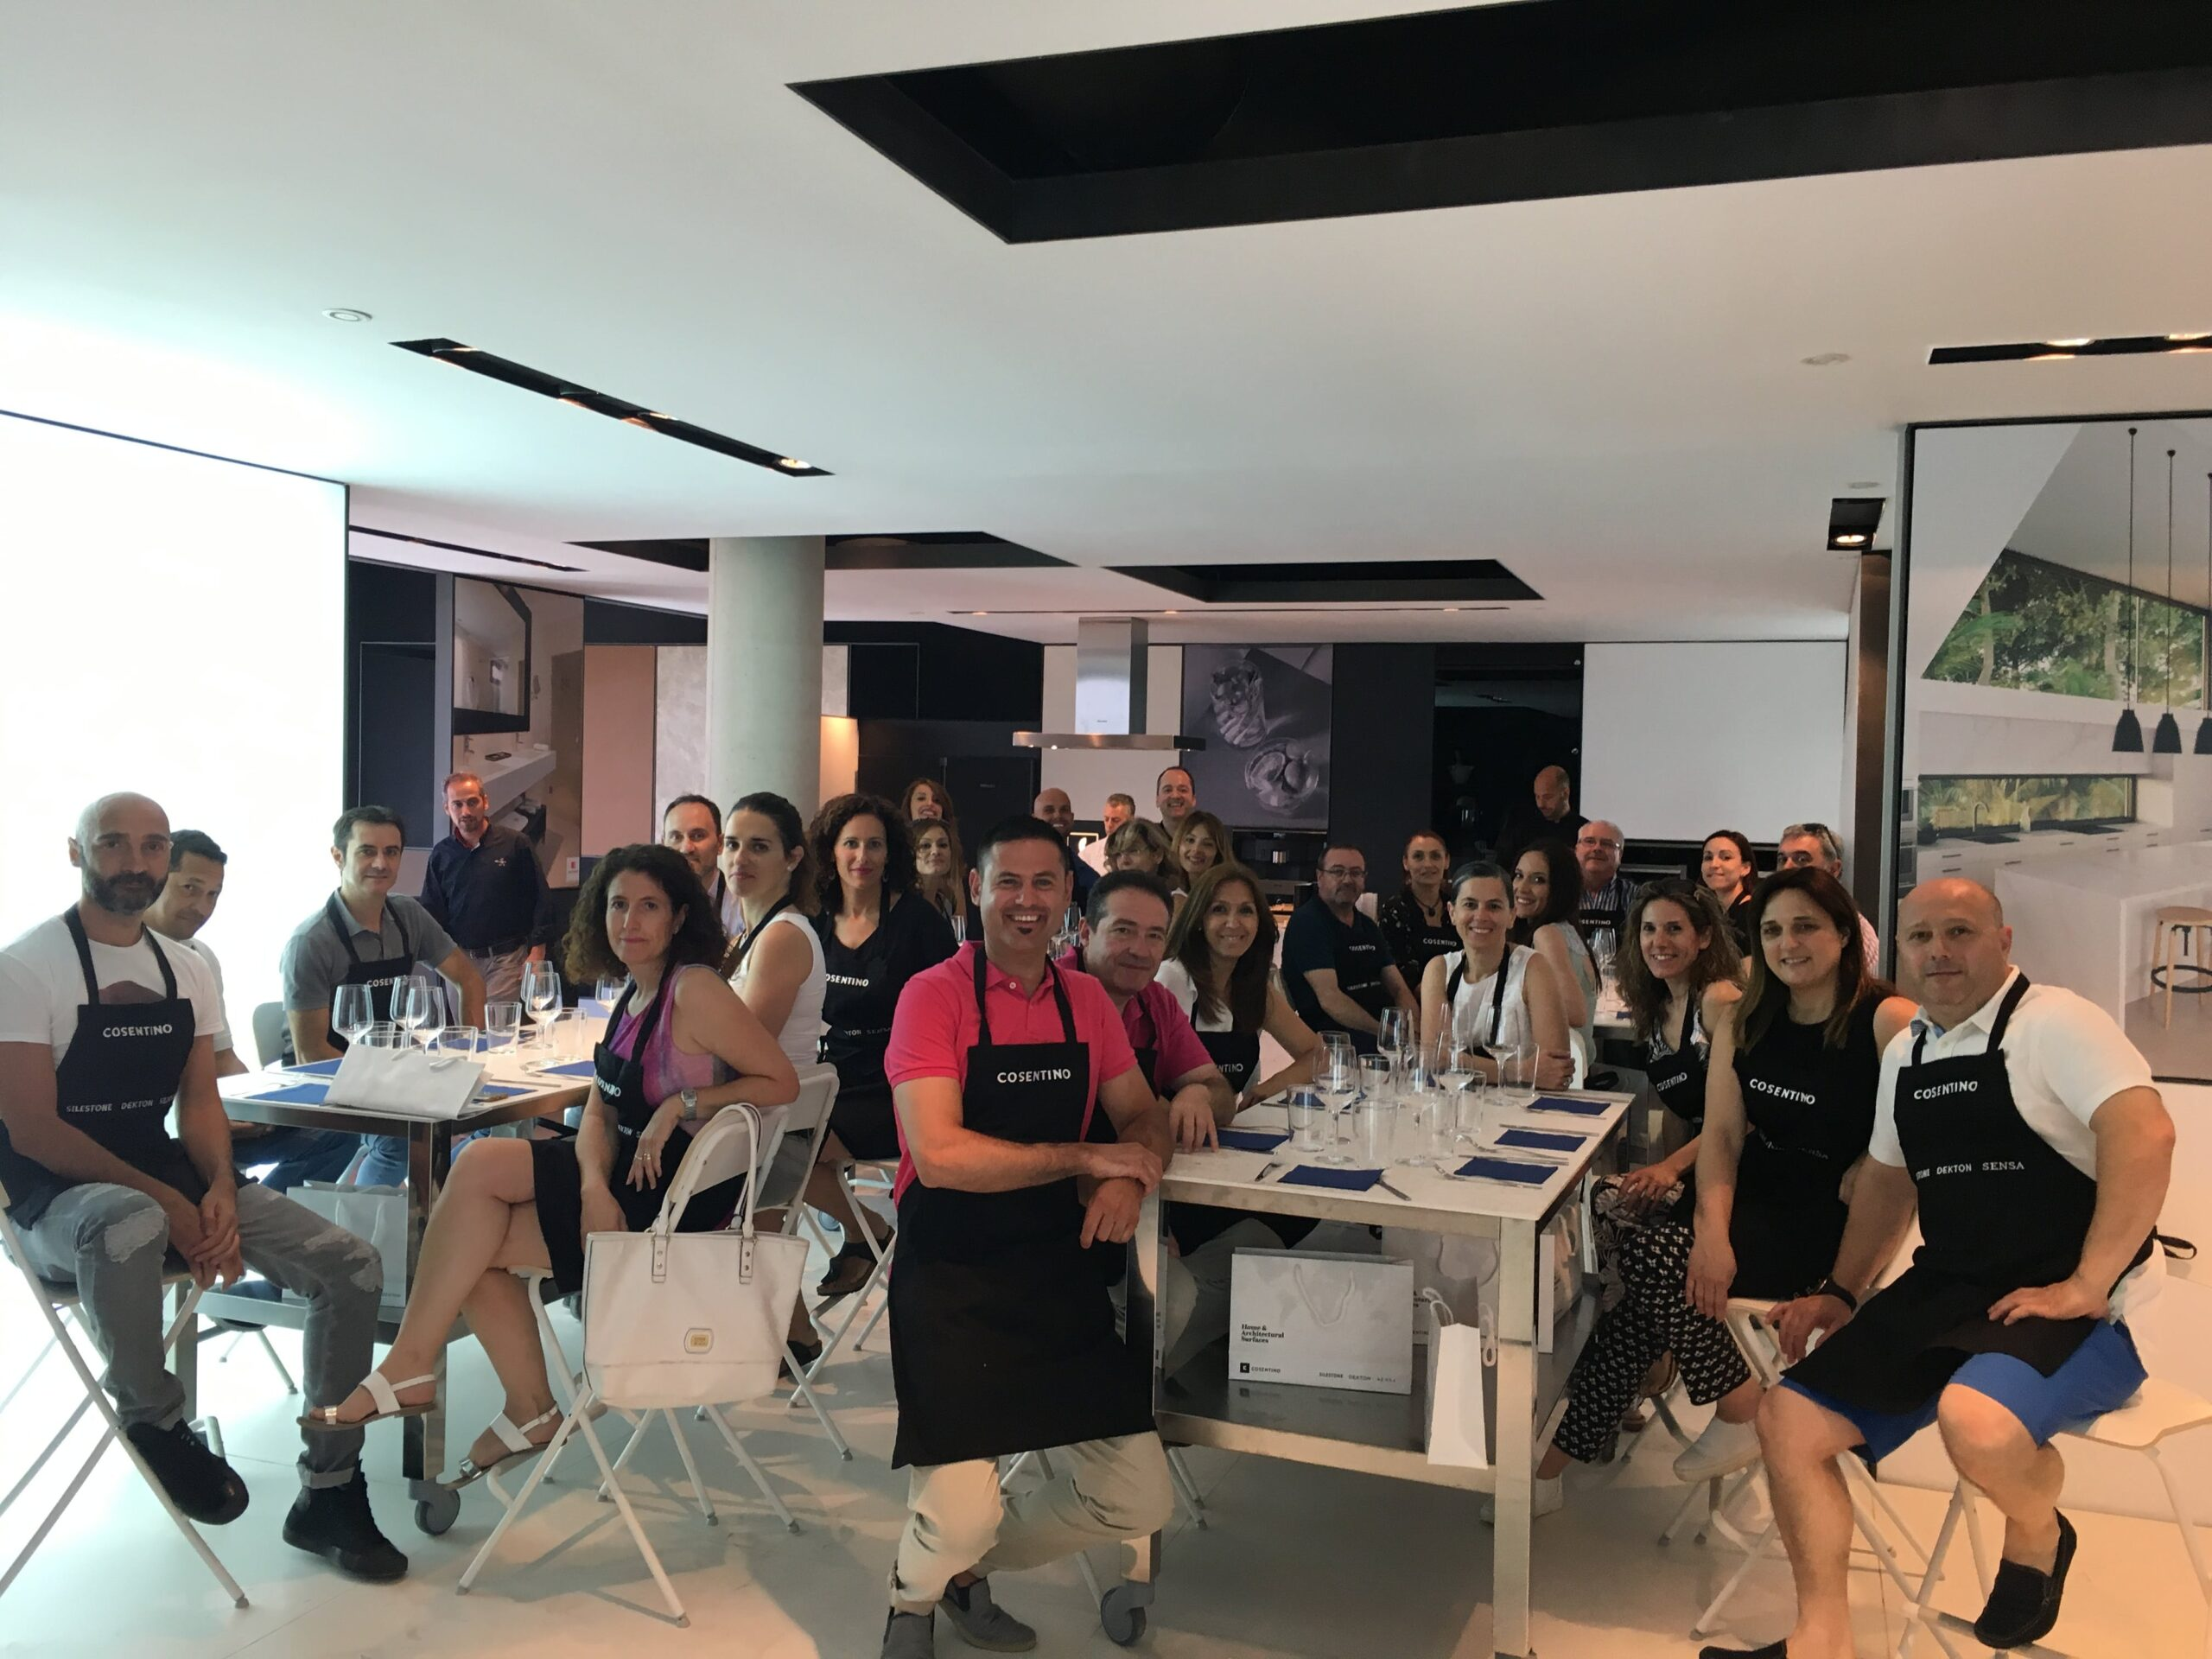 Image of Aula Showcooking en Cosentino Valencia Center 1 scaled in Cosentino brings together more than 2,000 k&b professionals - Cosentino